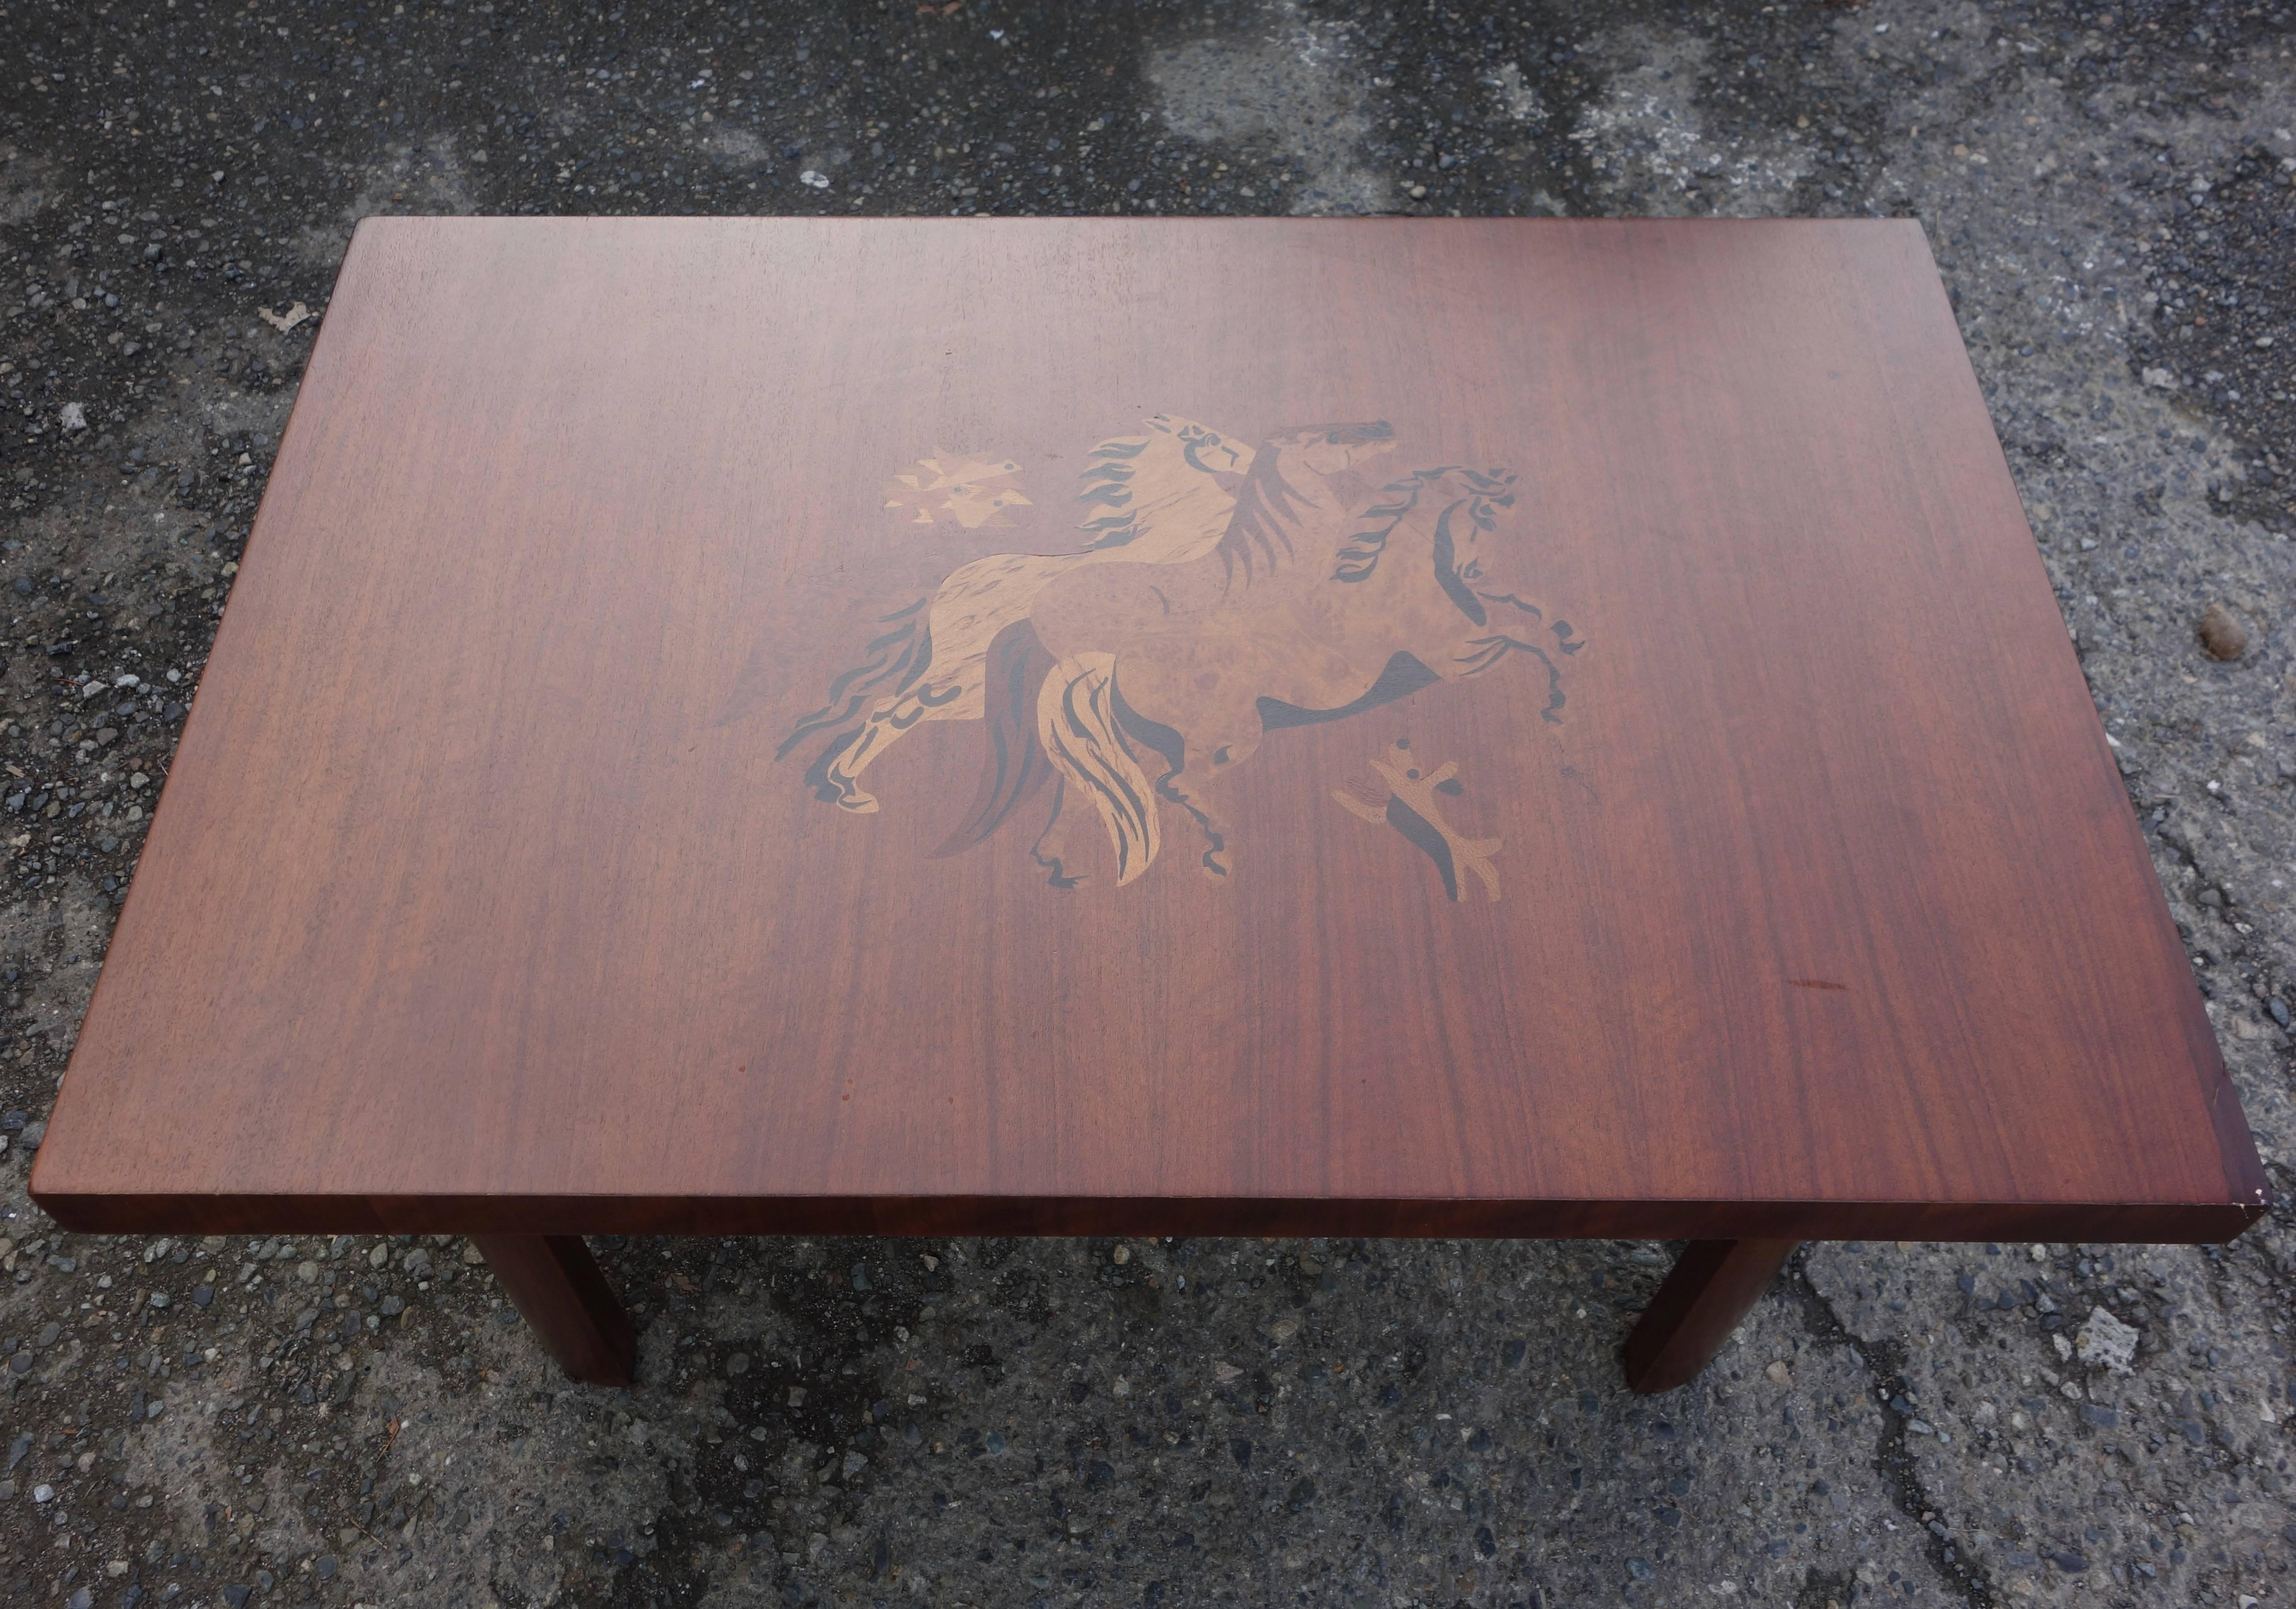 This Is A Walnut Coffee Table With Exotic Wood Inlay Of A Flock Of Birds,